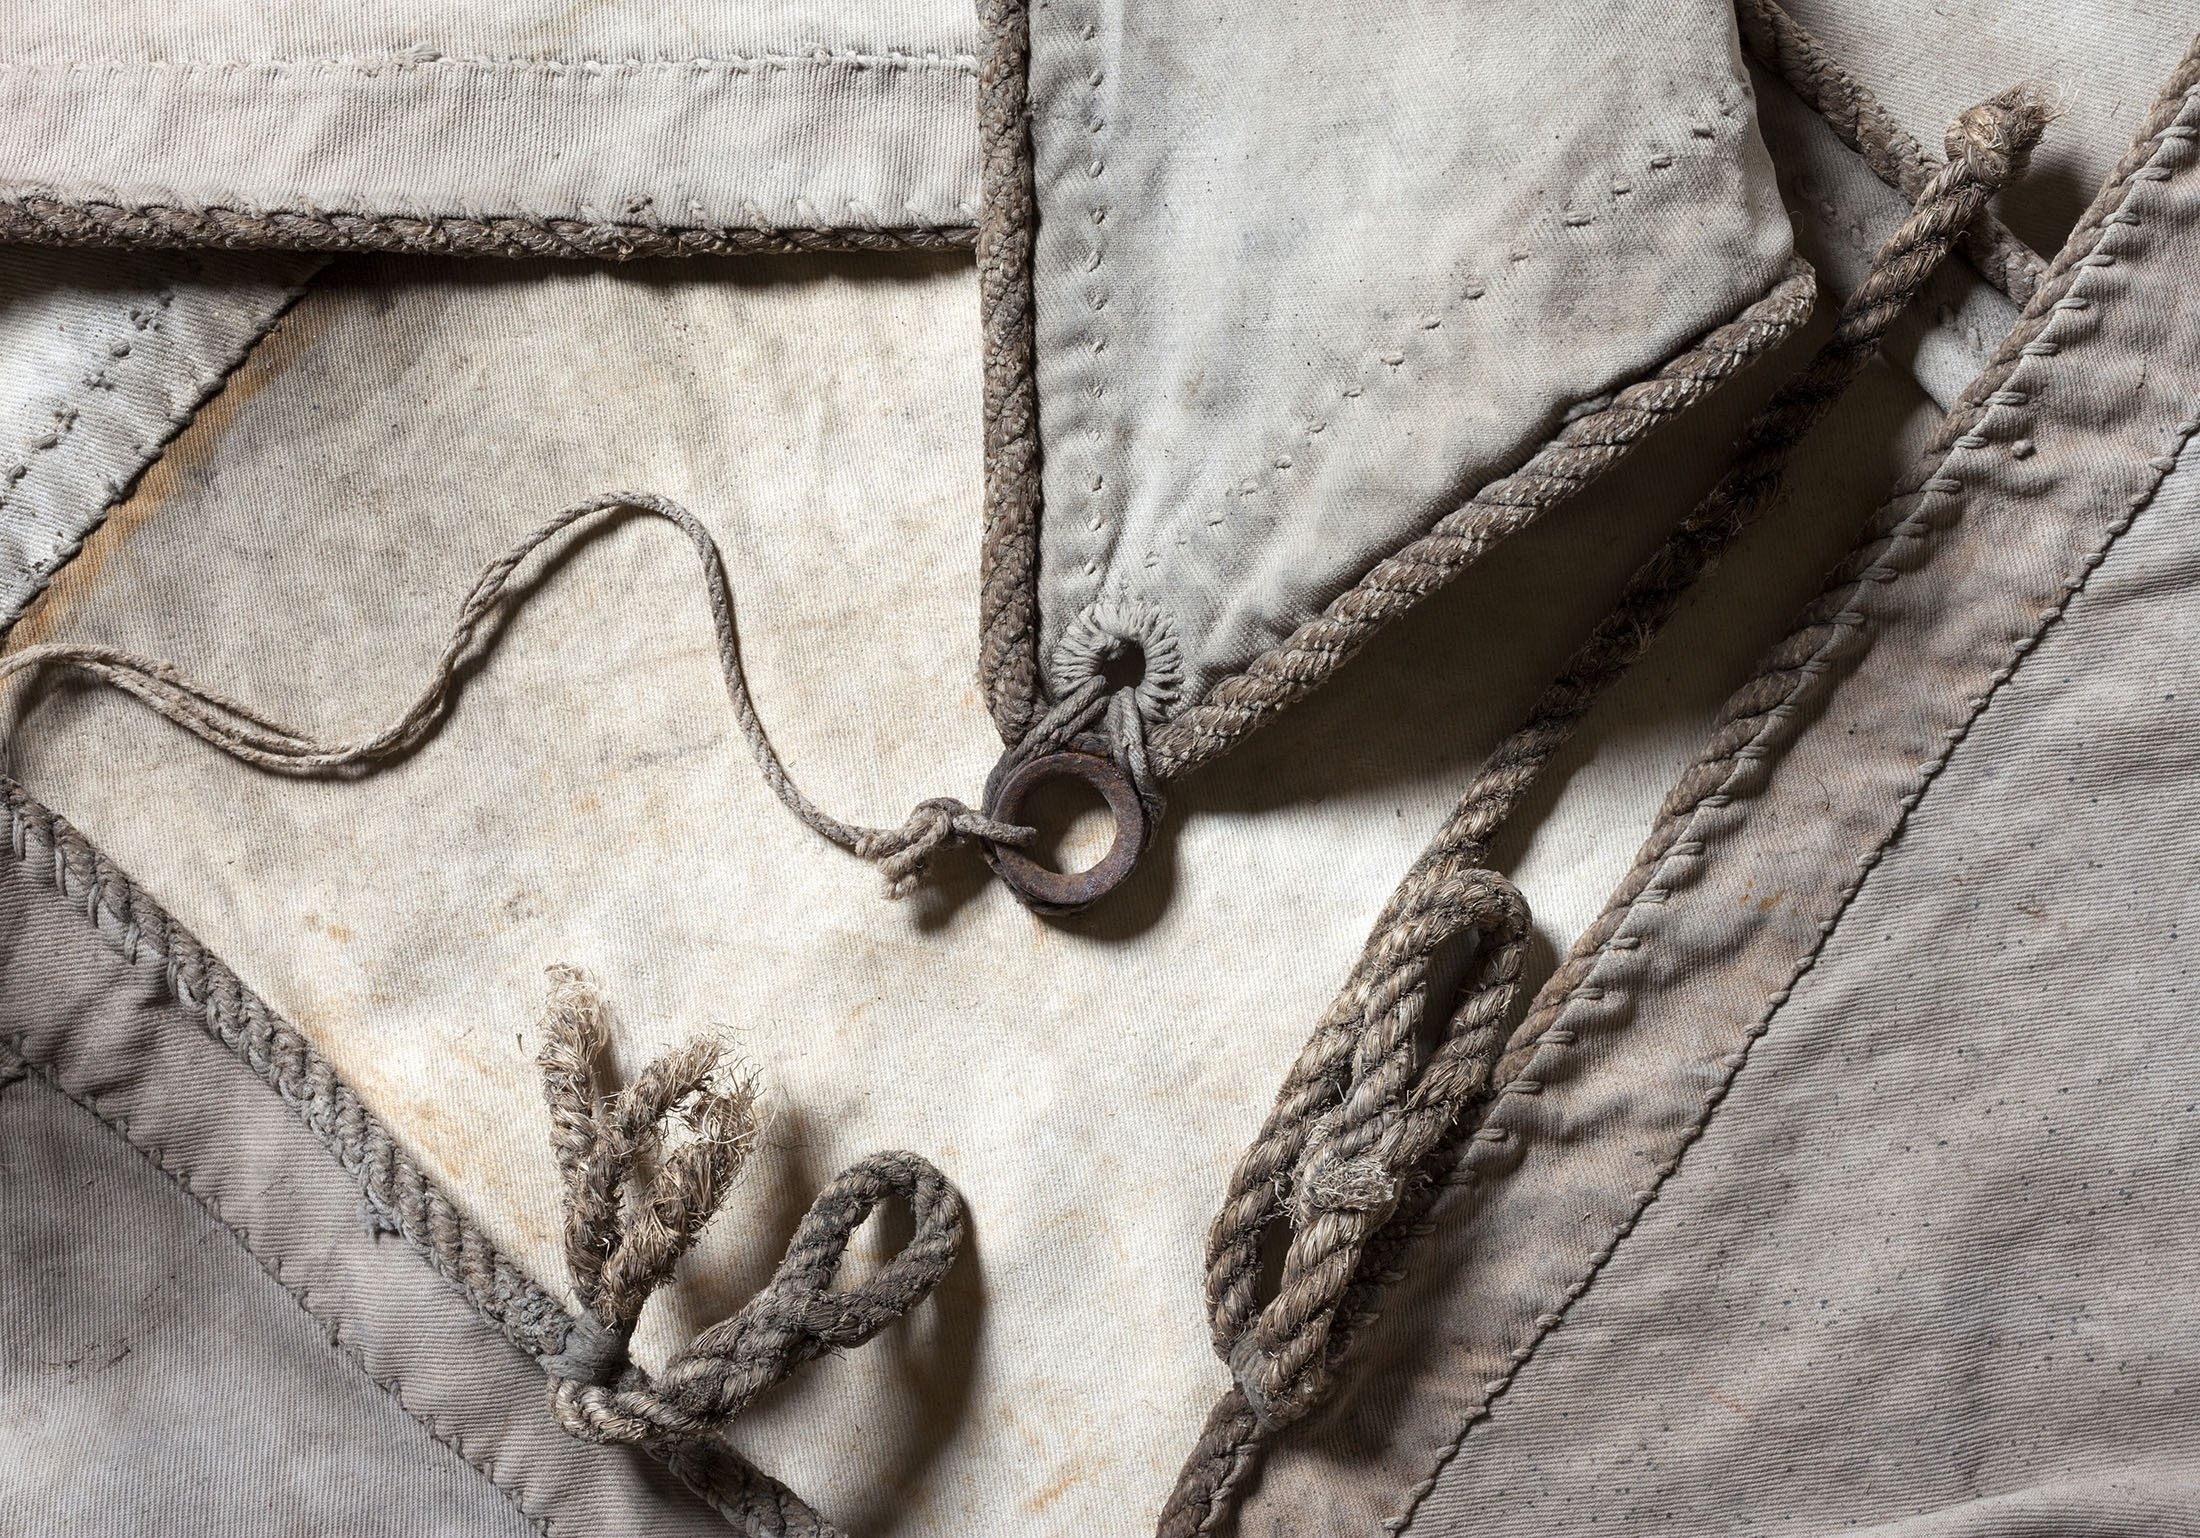 Although used sailcloths may seem like old rags to most, there are many creative ways to use them. (Shutterstock Photo)